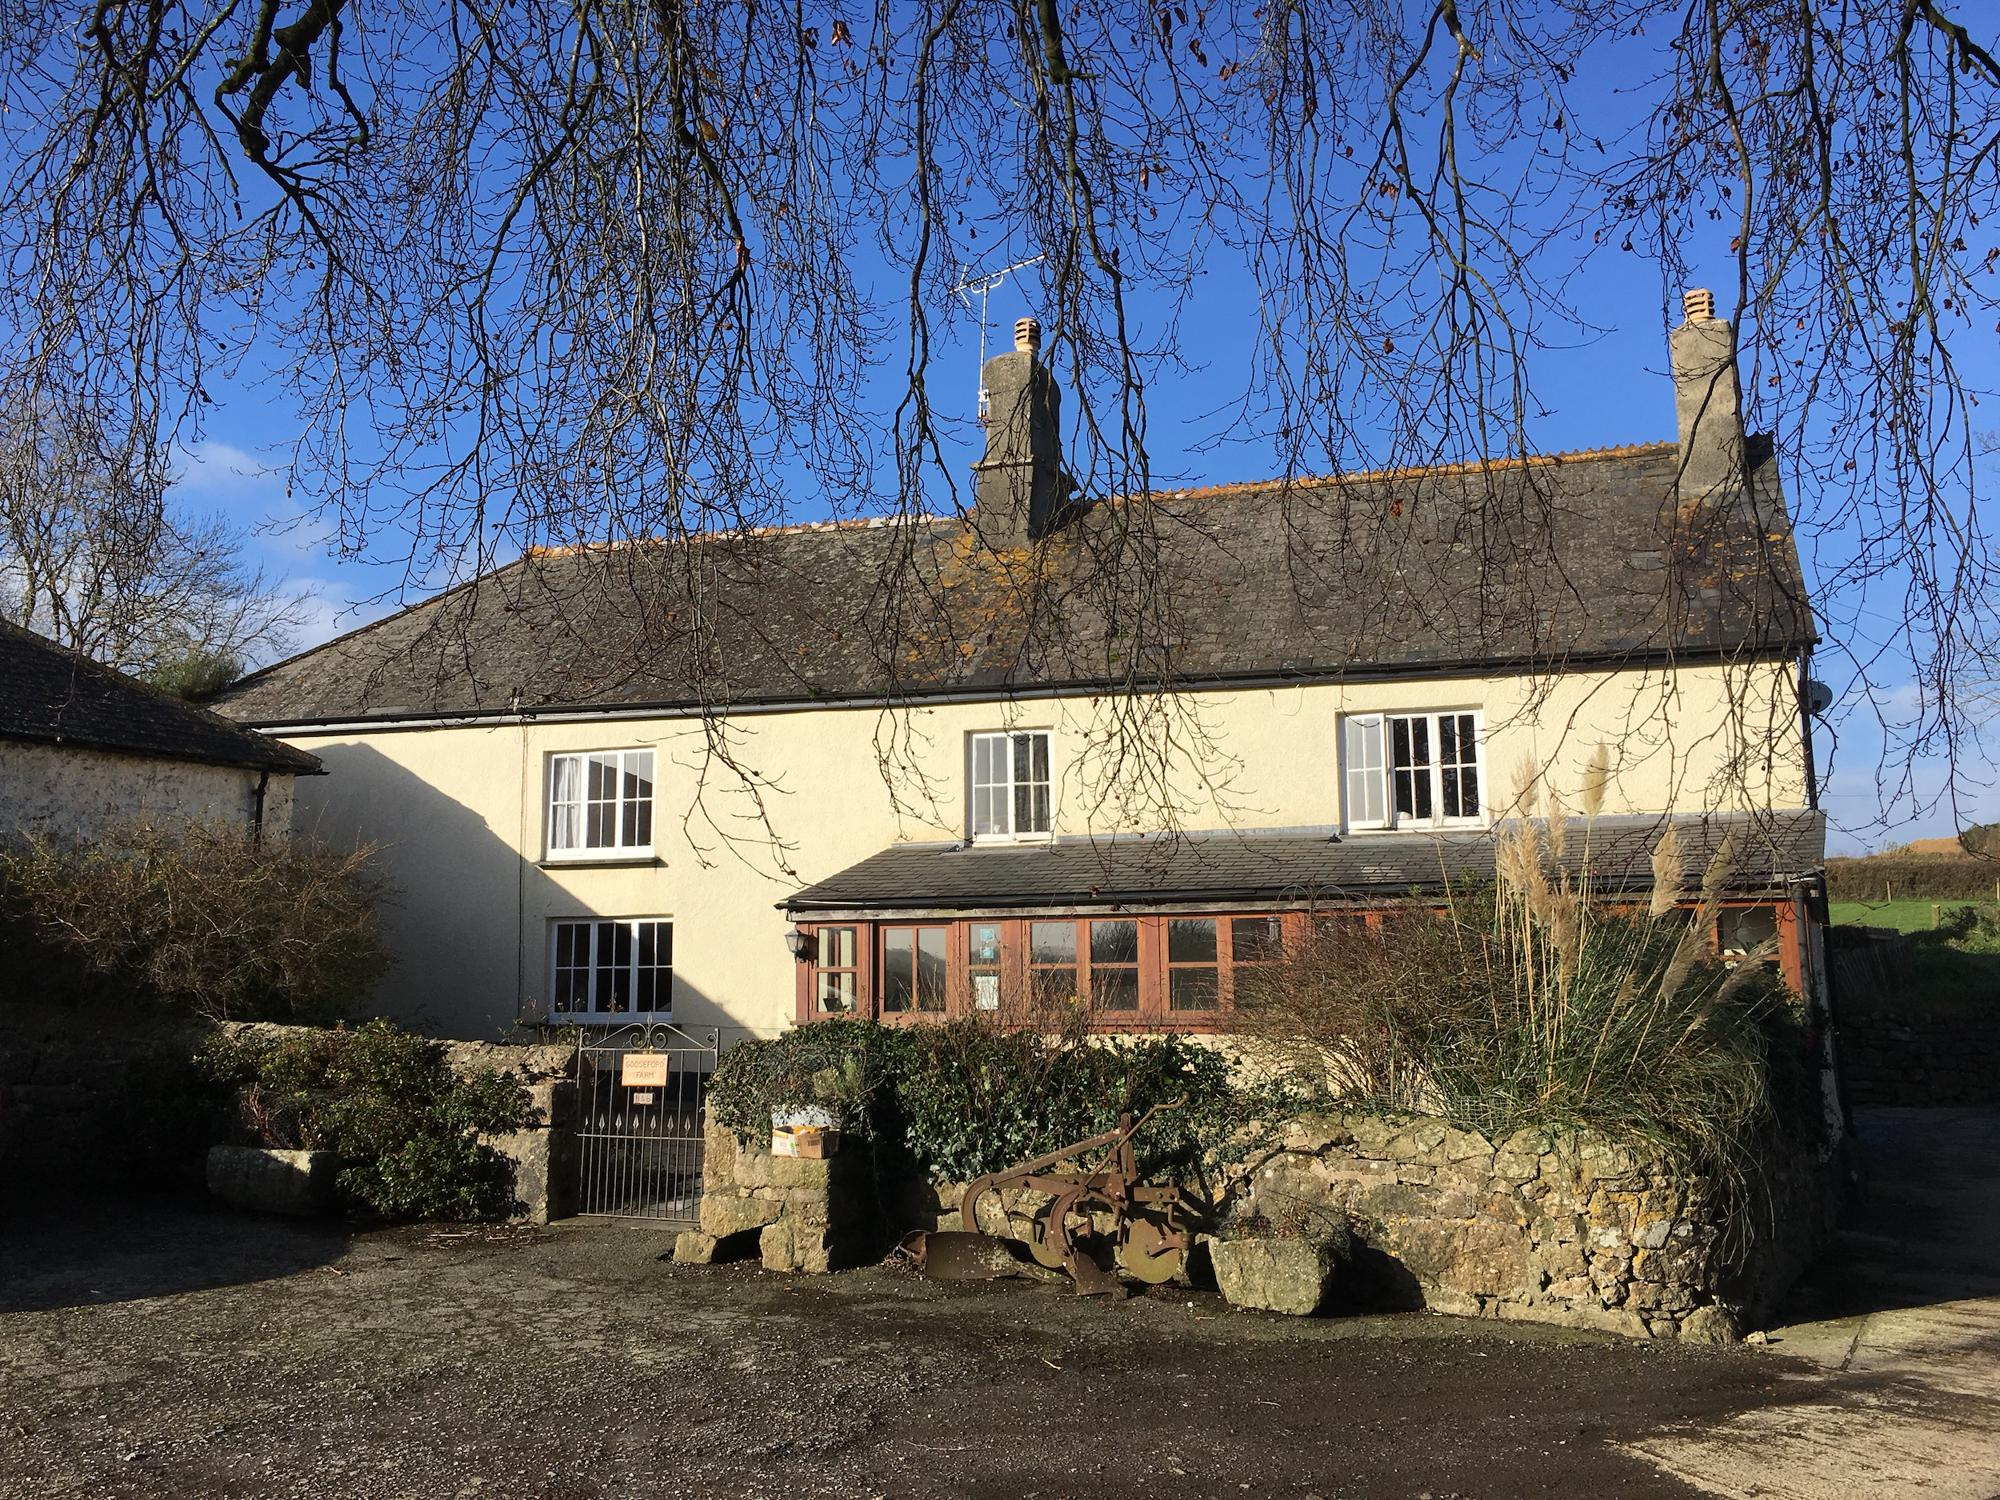 B&Bs in Moretonhampstead holidays at Cool Places